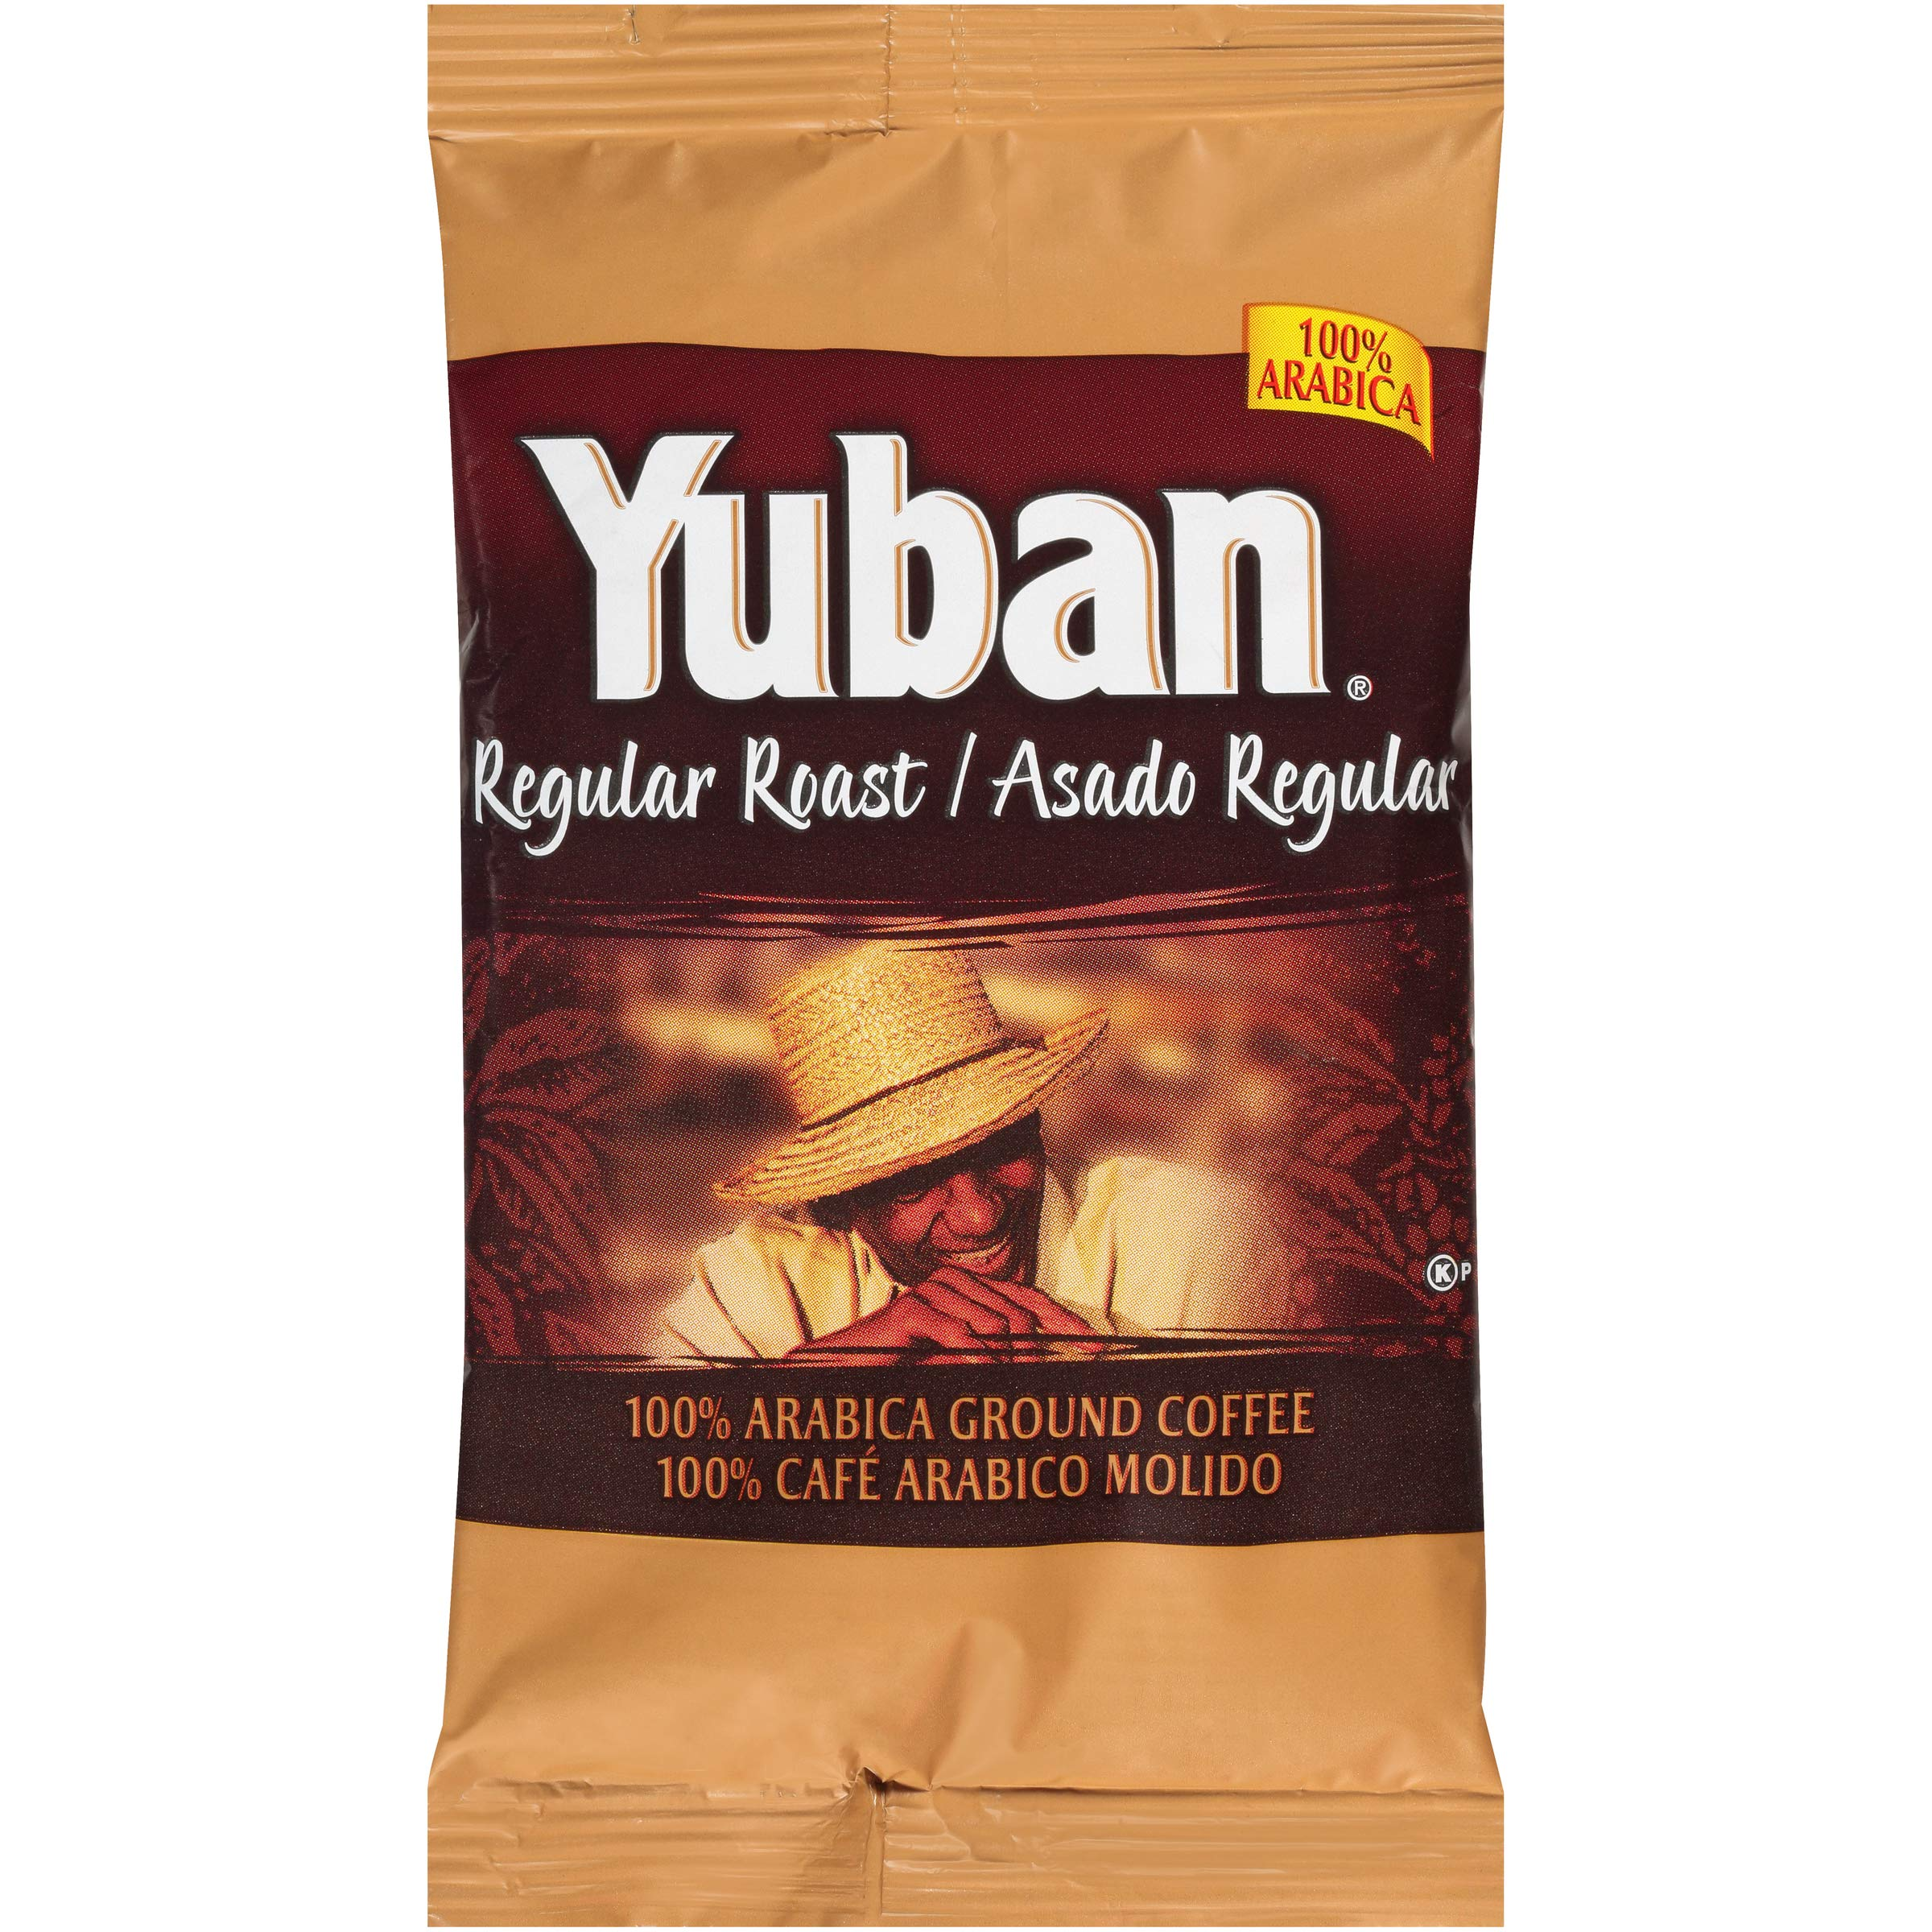 Yuban Regular Ground Coffee (2oz Bags, Pack of 192) by Yuban (Image #1)